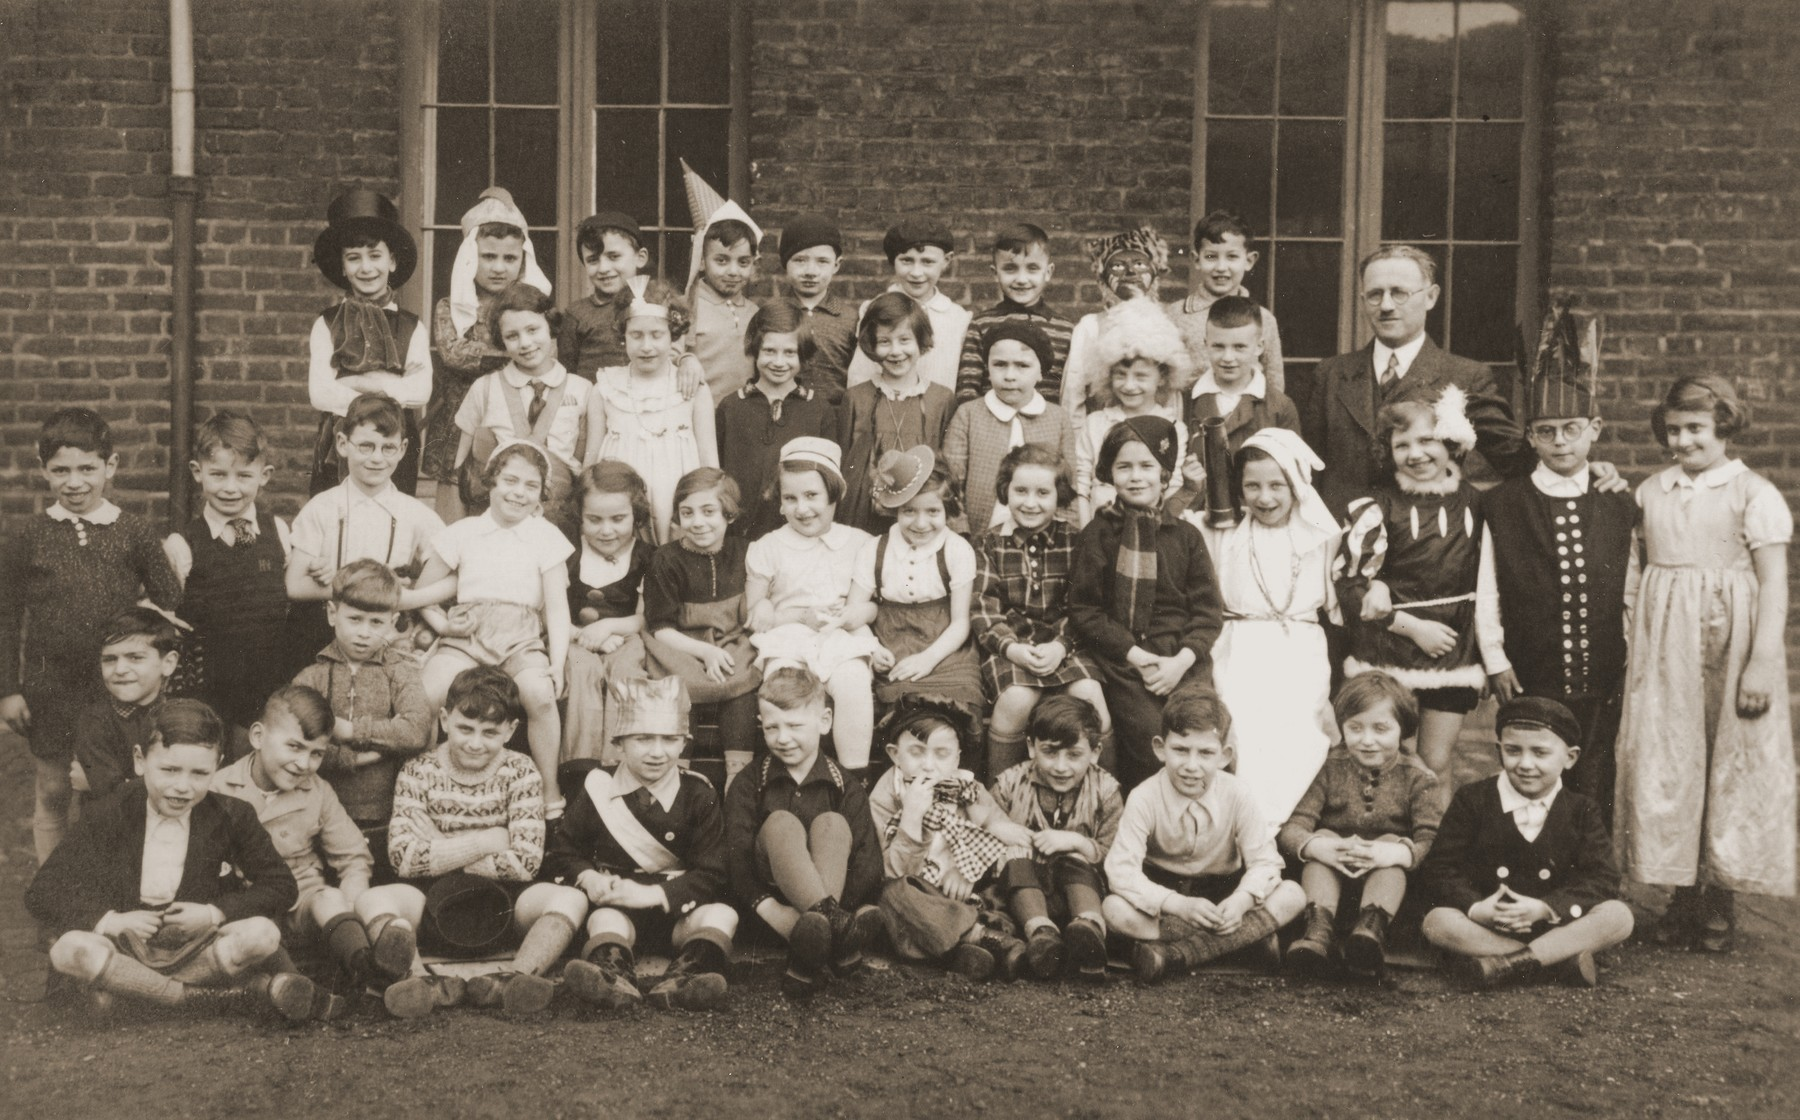 Group portrait of students at the Israelitische Volkschule Essen dressed up in Purim costumes.    Among those pictured is the teacher, Fritz Kaiser, (standing at the right), and Heinz Straus (back row, right).